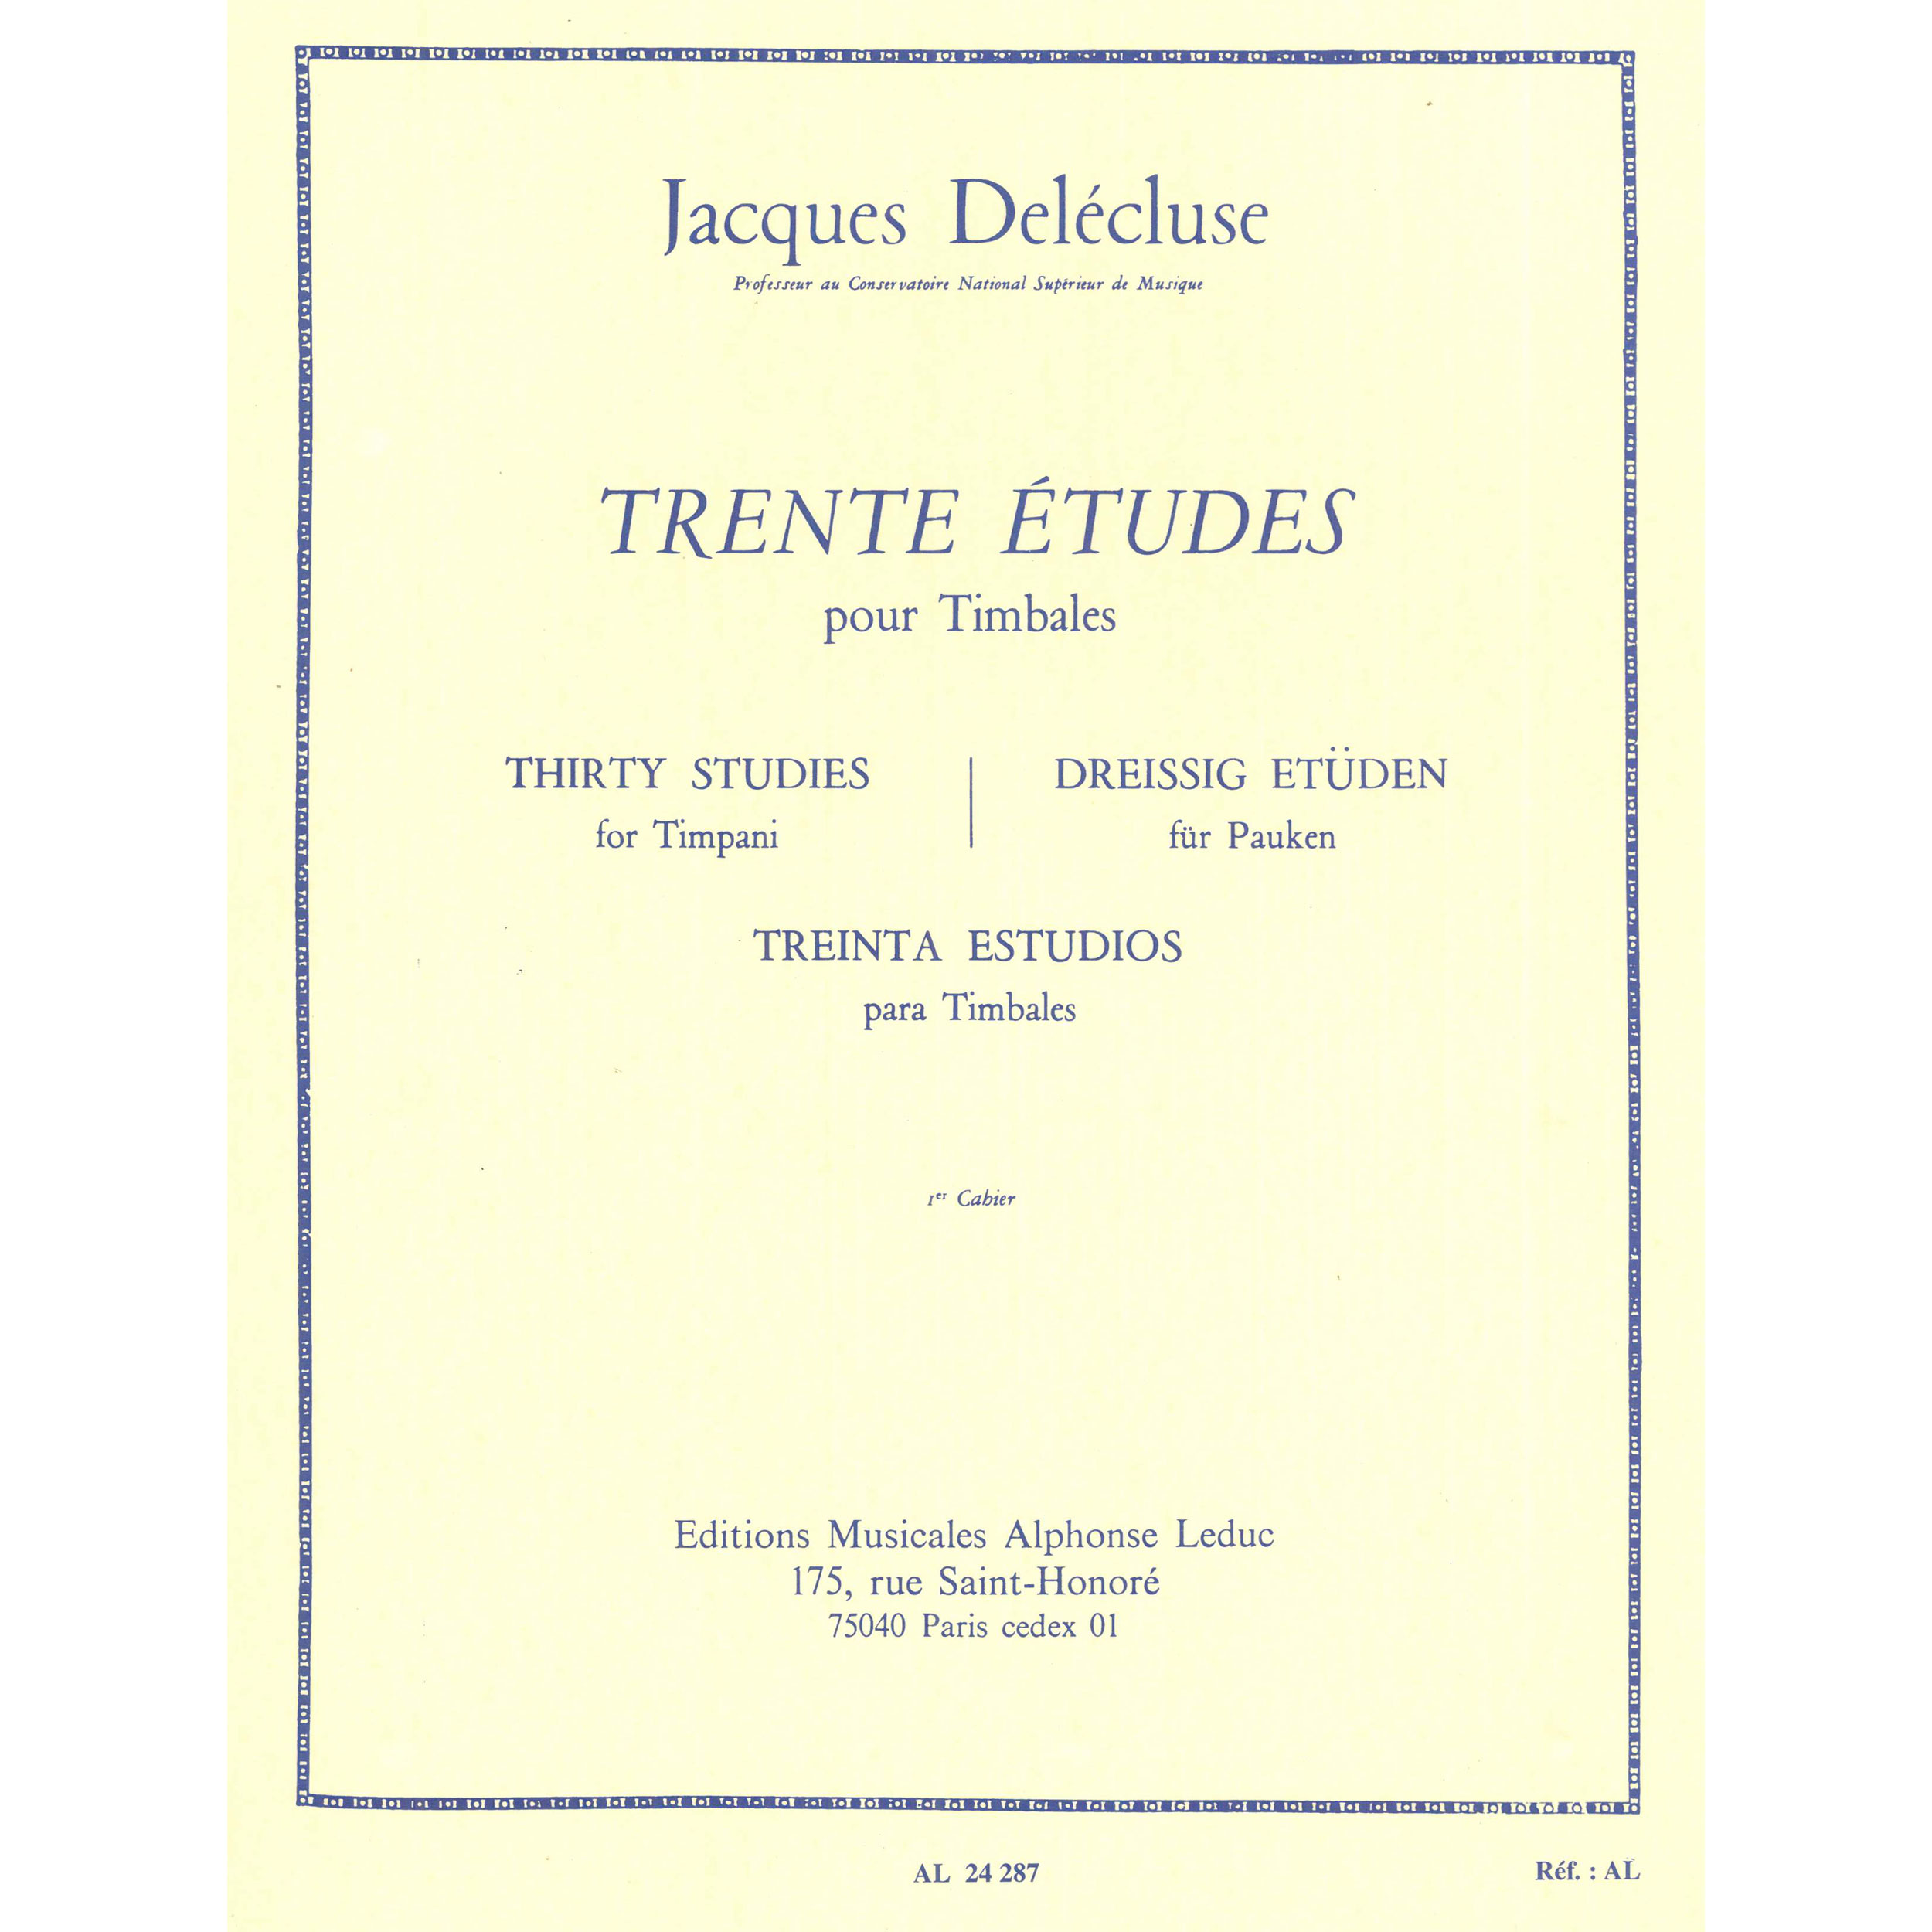 Trente Etudes pour Timbales (Thirty Etudes for Timpani) Book 1 by Jacques Delecluse